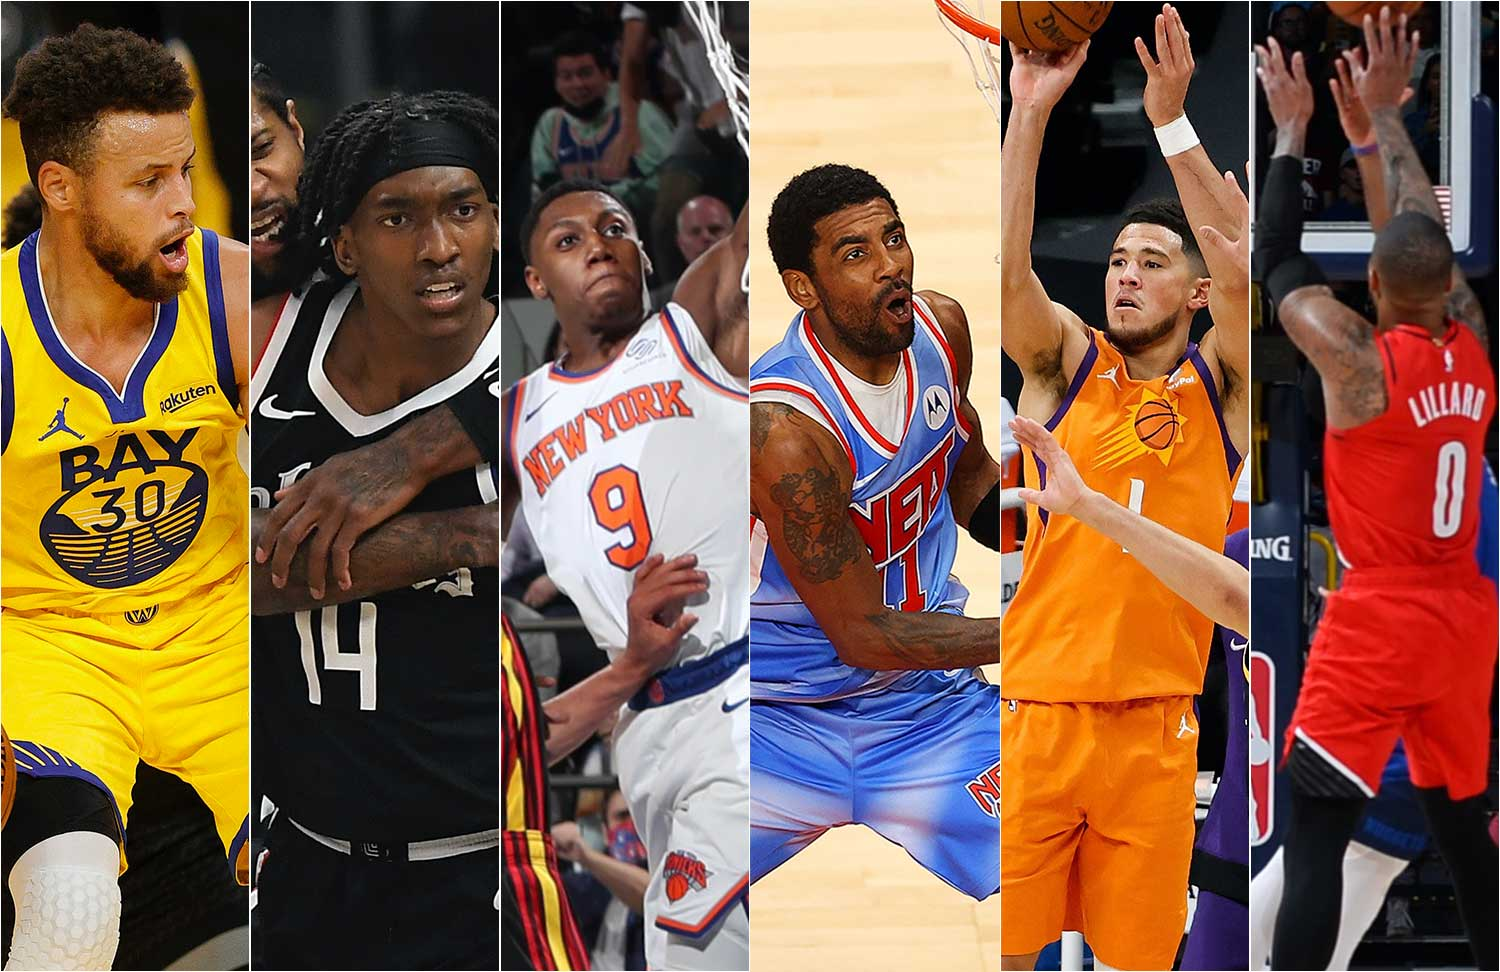 This week, the NBA's counting down its Top 100 Plays of 2020-21, starting with the first 20 today. Which ones can you find on Top Shot?